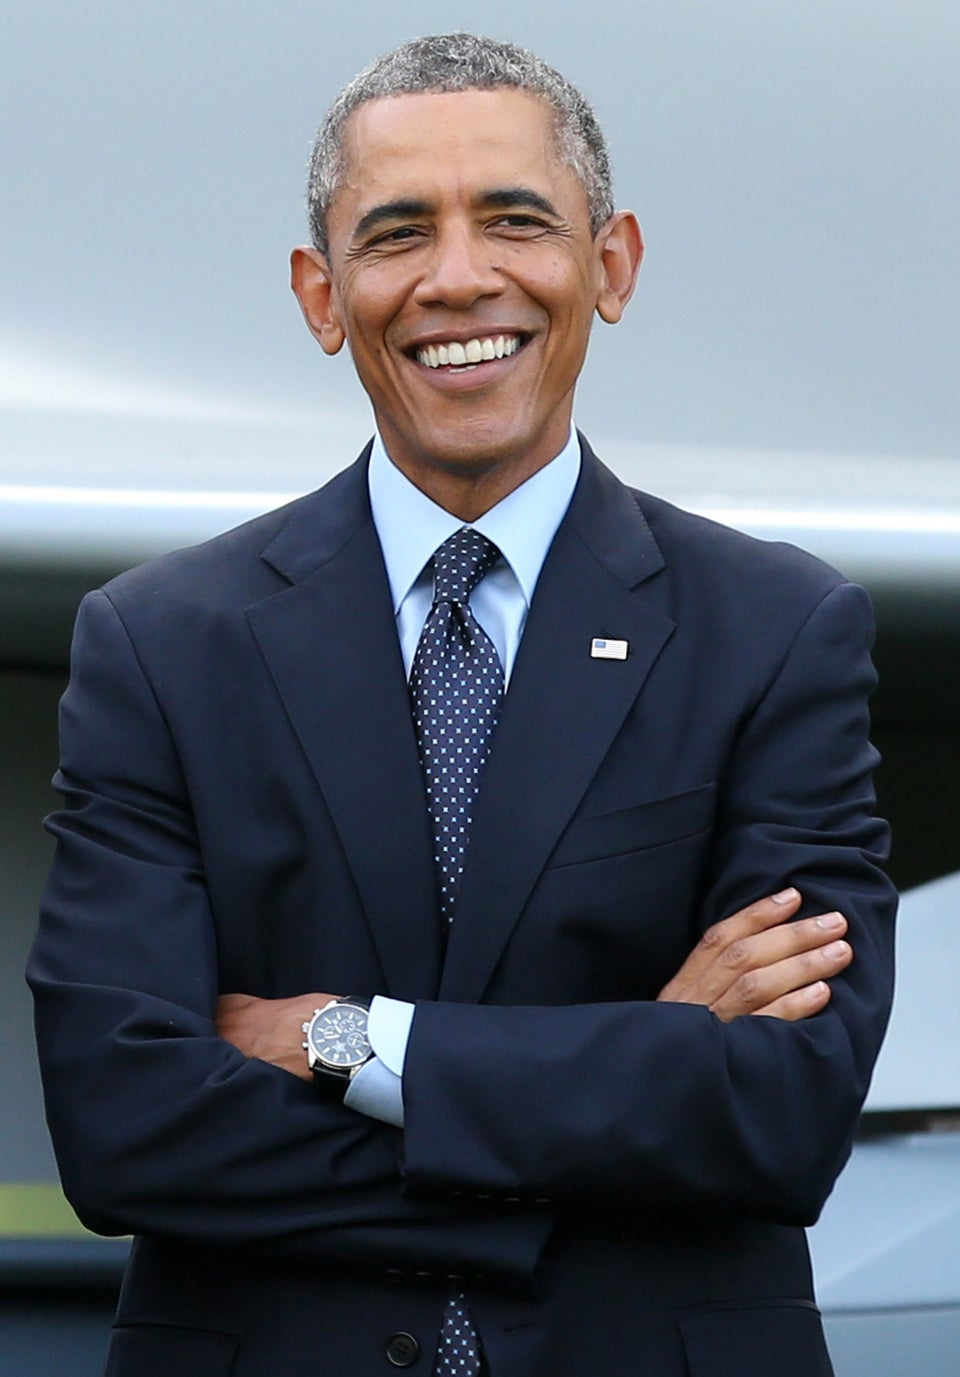 That's My President: Obama Leaves Office With One Of The Highest Approval Ratings Ever